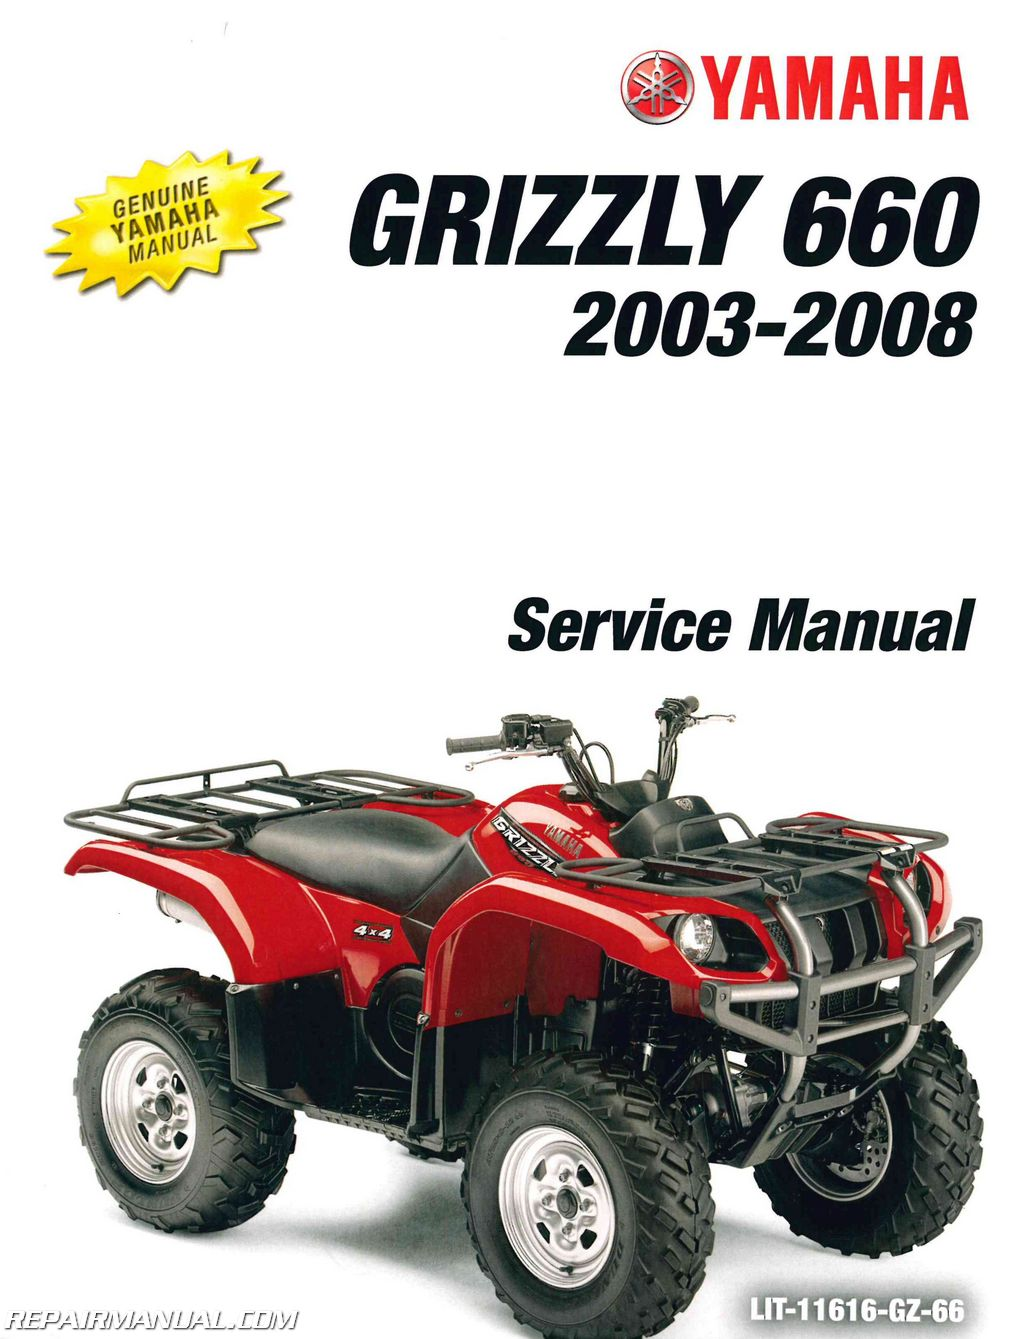 Yamaha Grizzly 660 >> YFM660FA Grizzly 660 Yamaha ATV Service Manual 2003-2008